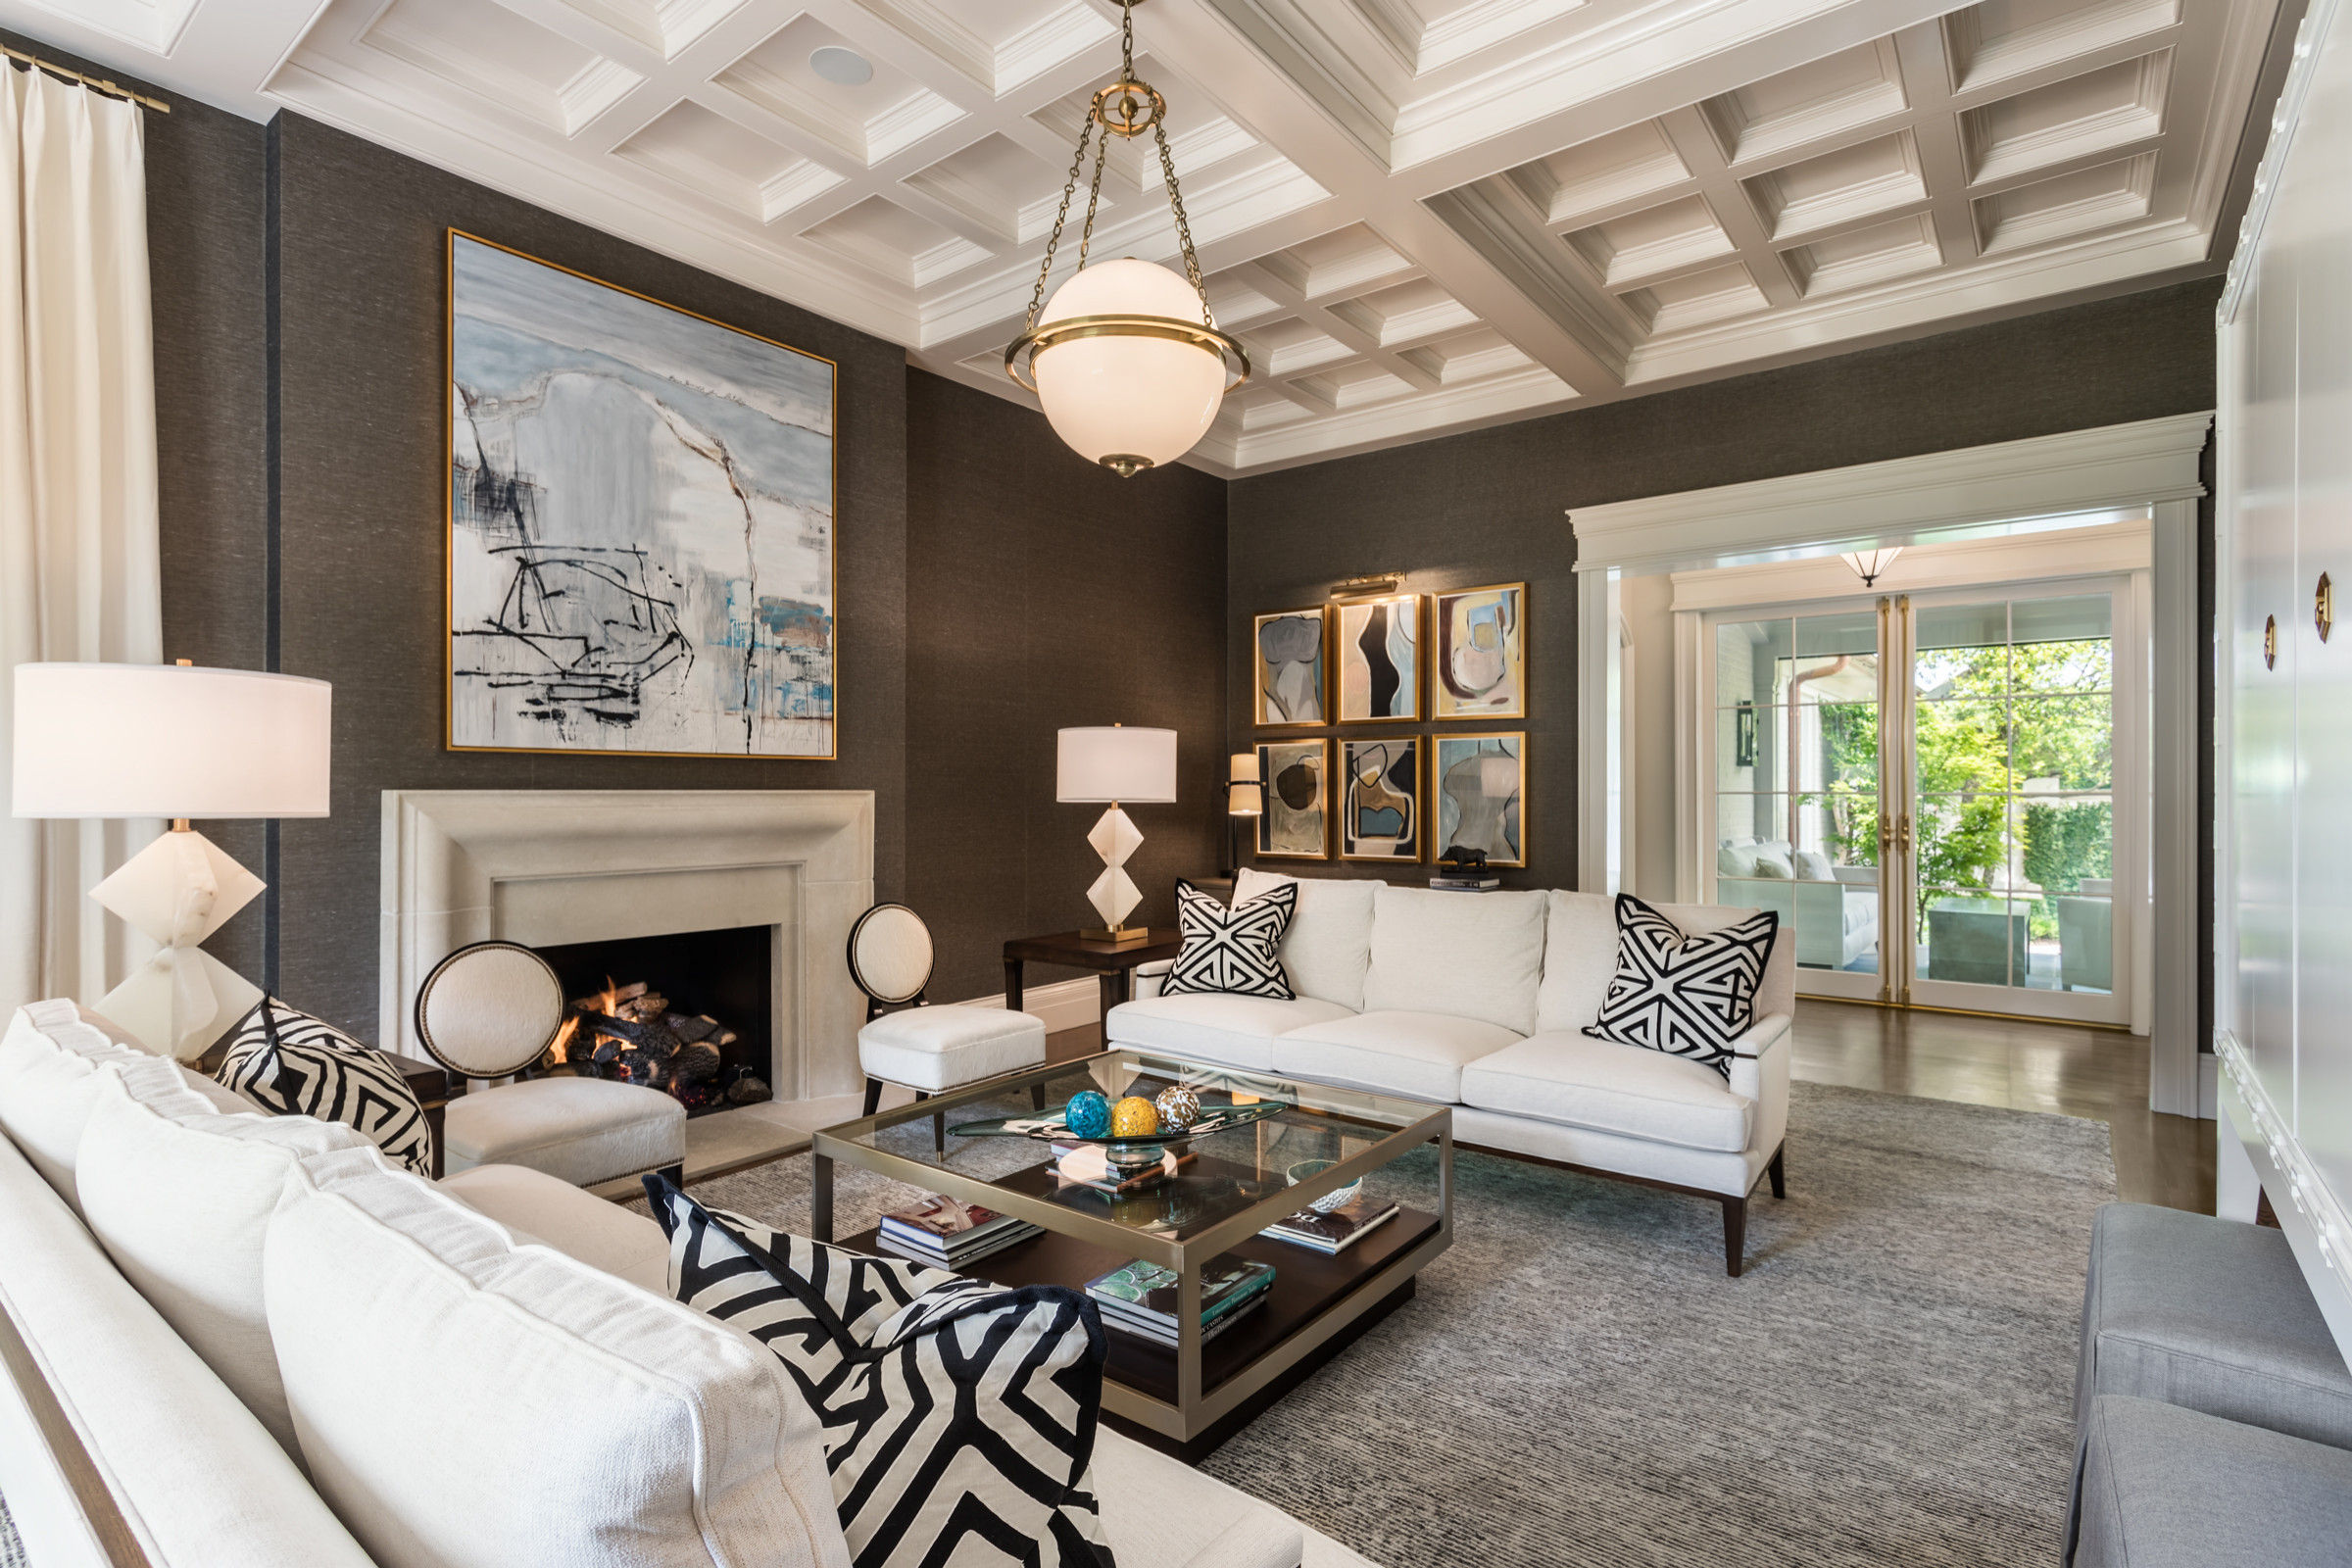 75 Beautiful Transitional Living Room With Brown Walls Pictures Ideas December 2020 Houzz